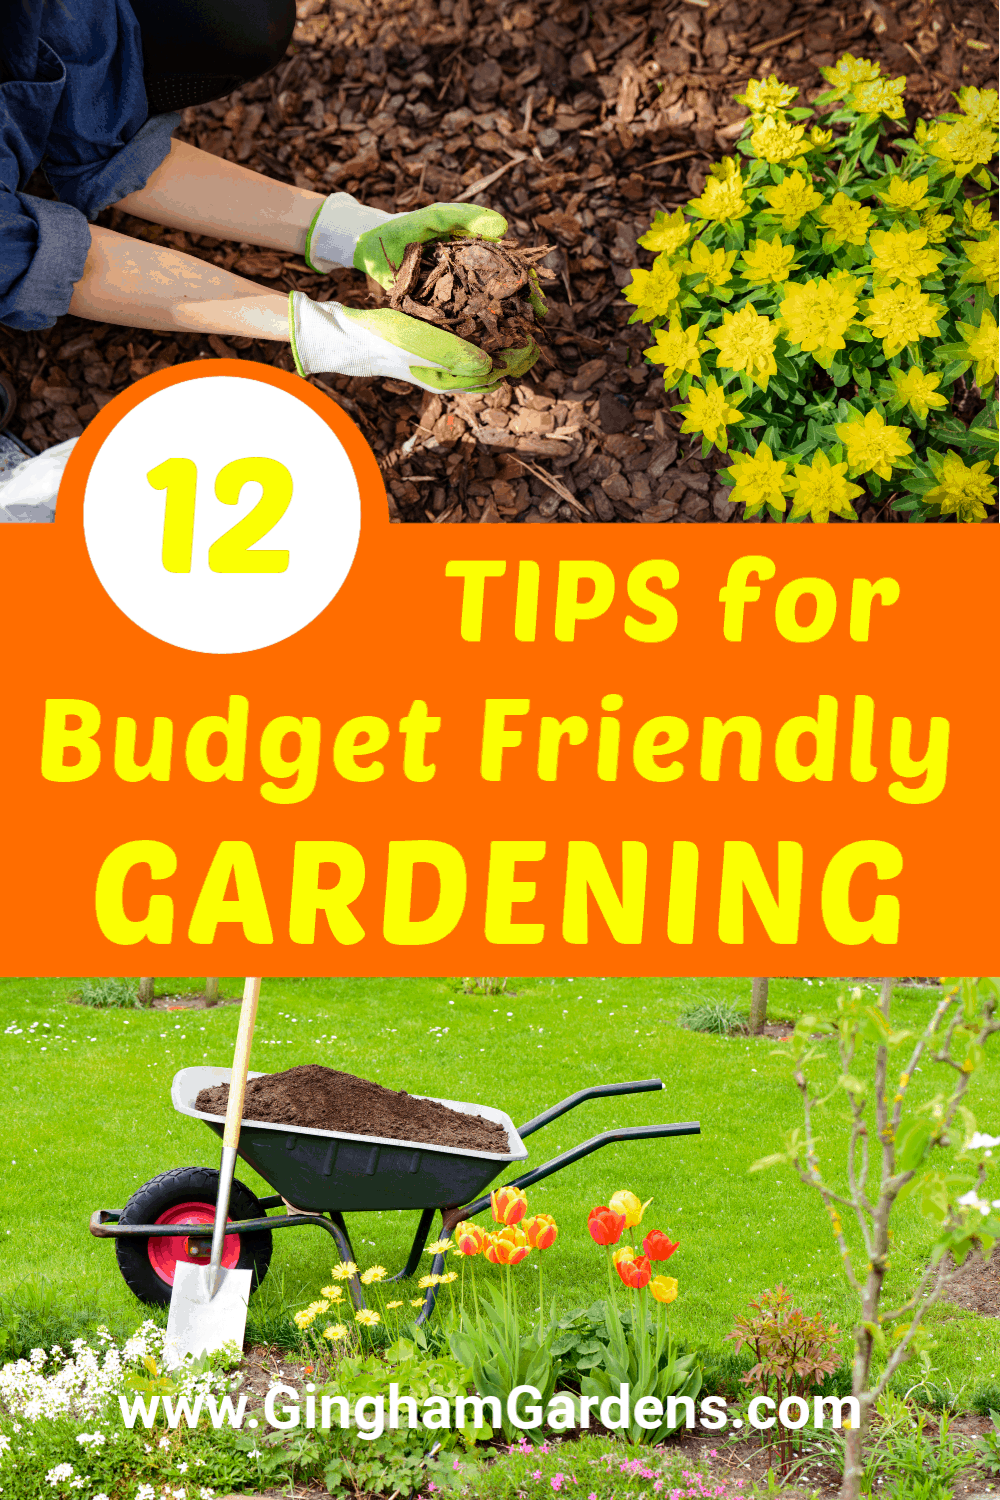 Images of gardens with text overlay - 12 Tips for Budget Friendly Gardening